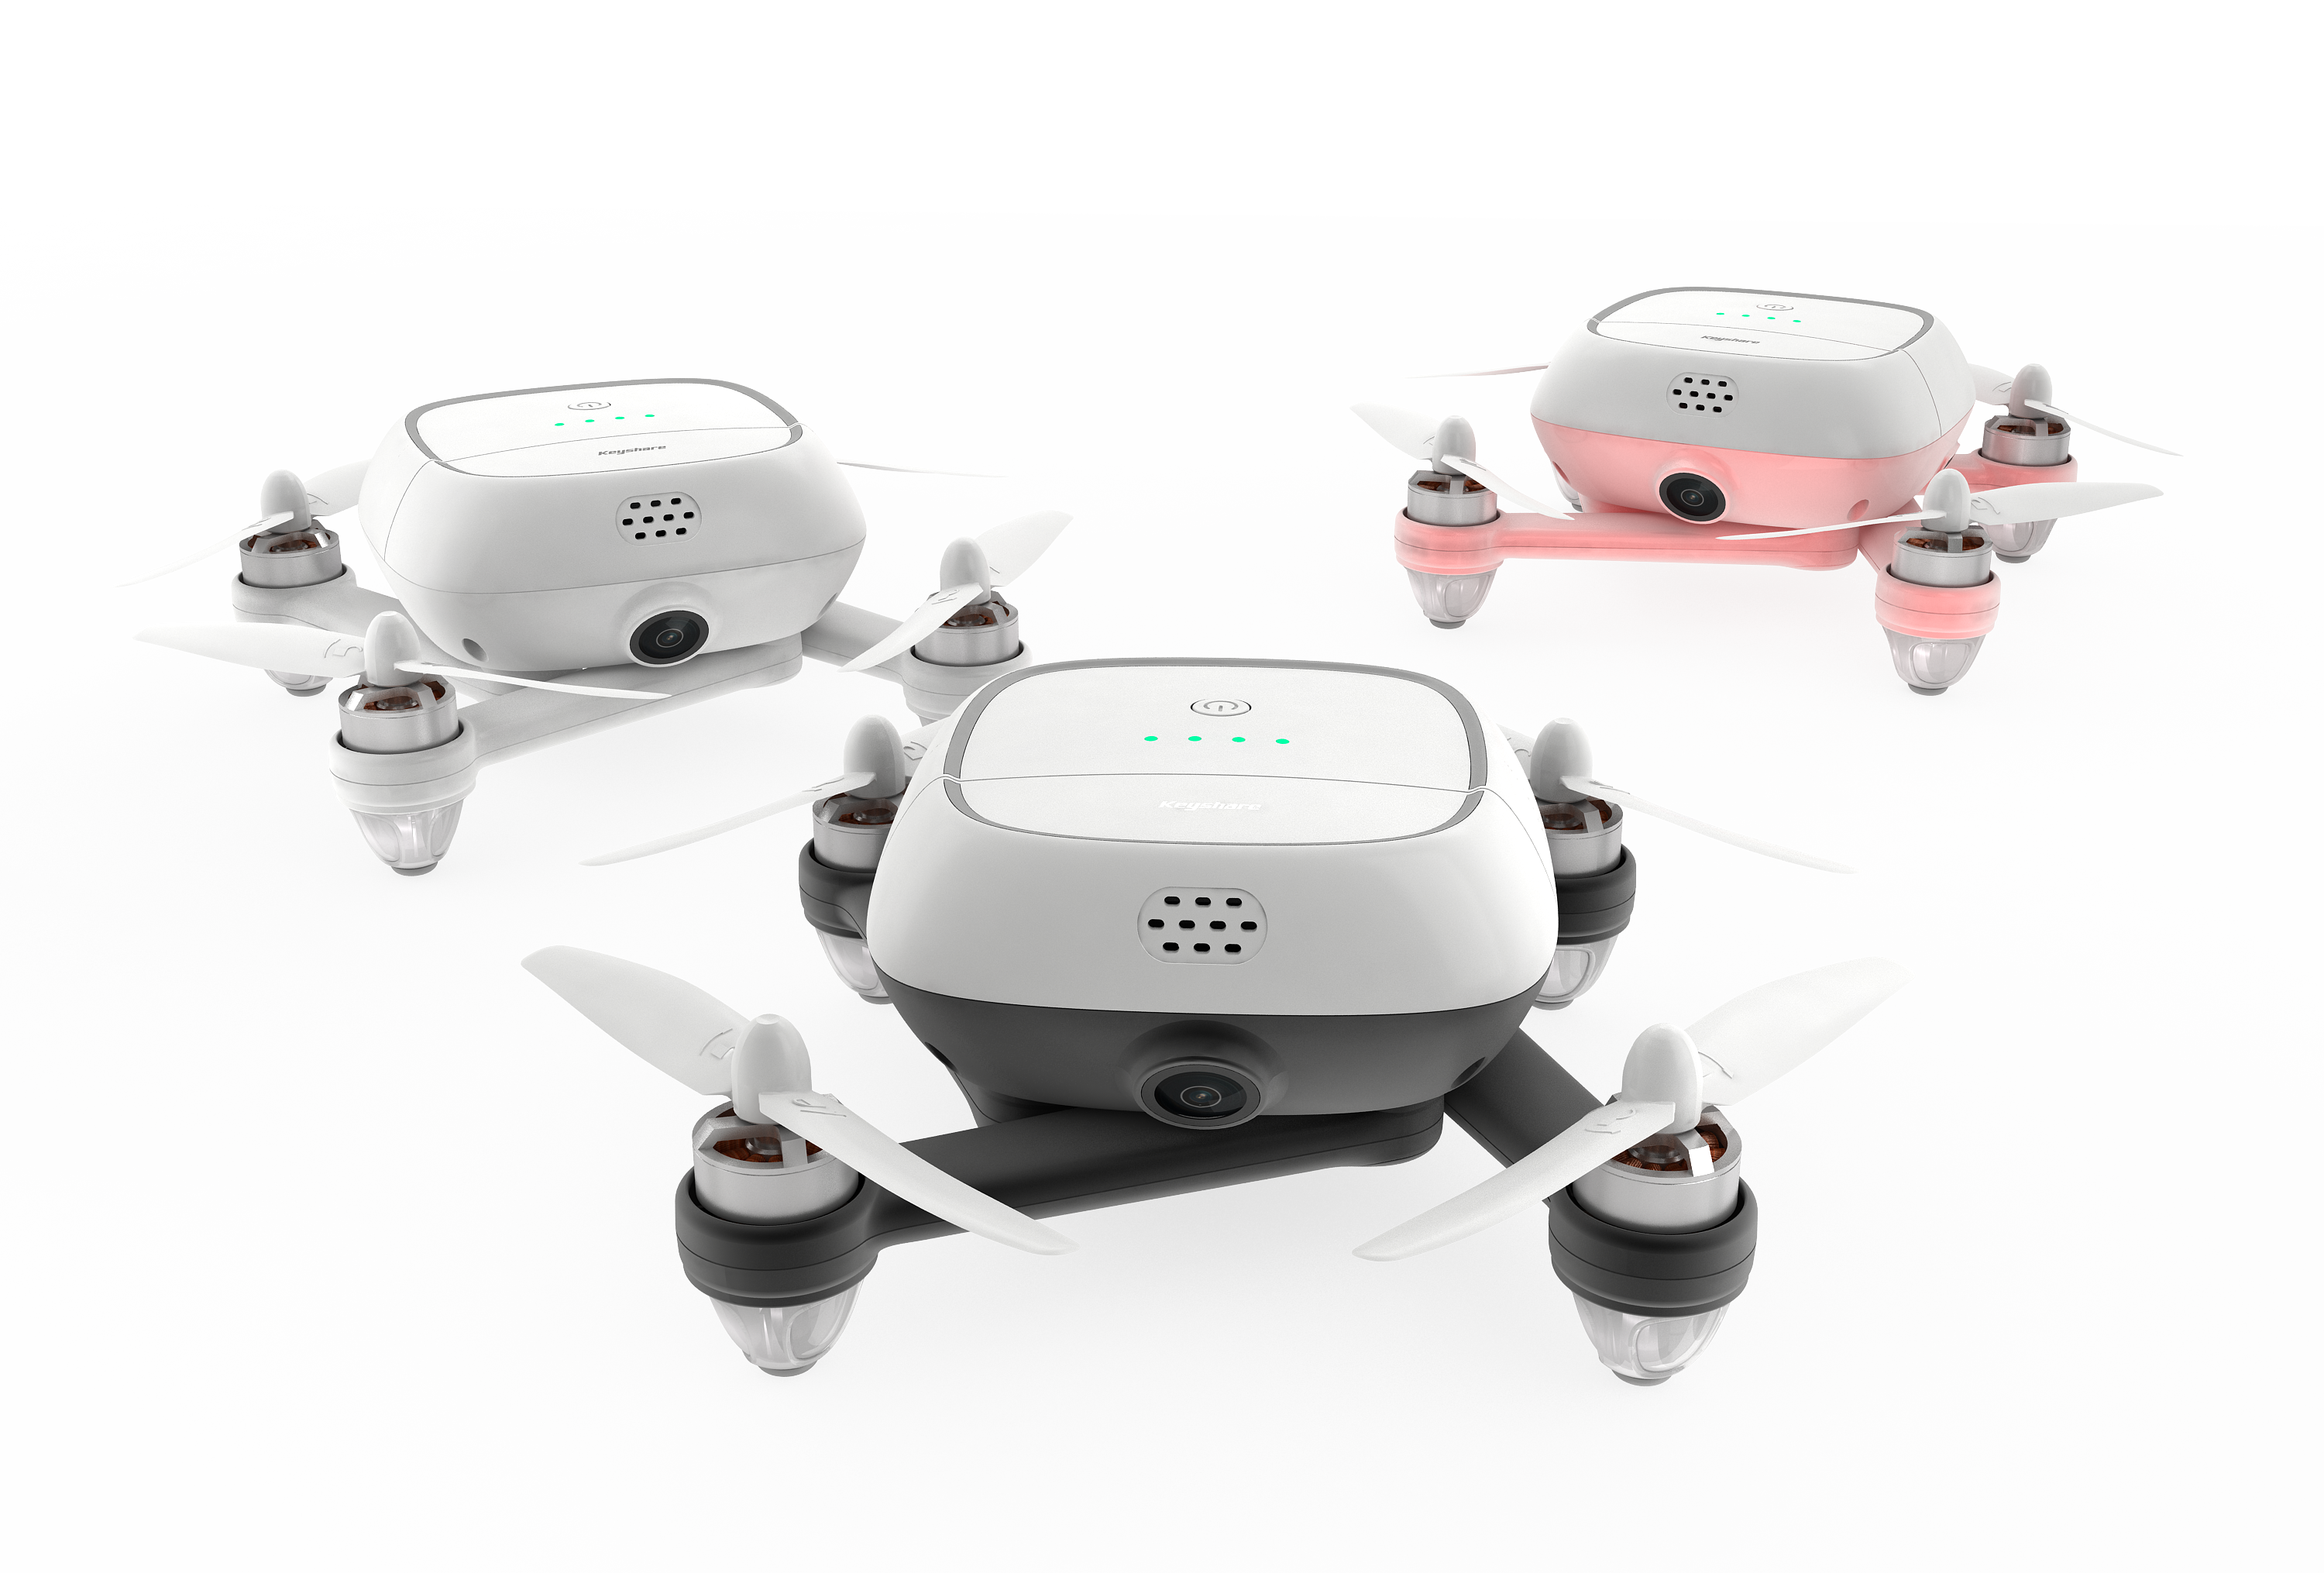 The Kimon selfie drone